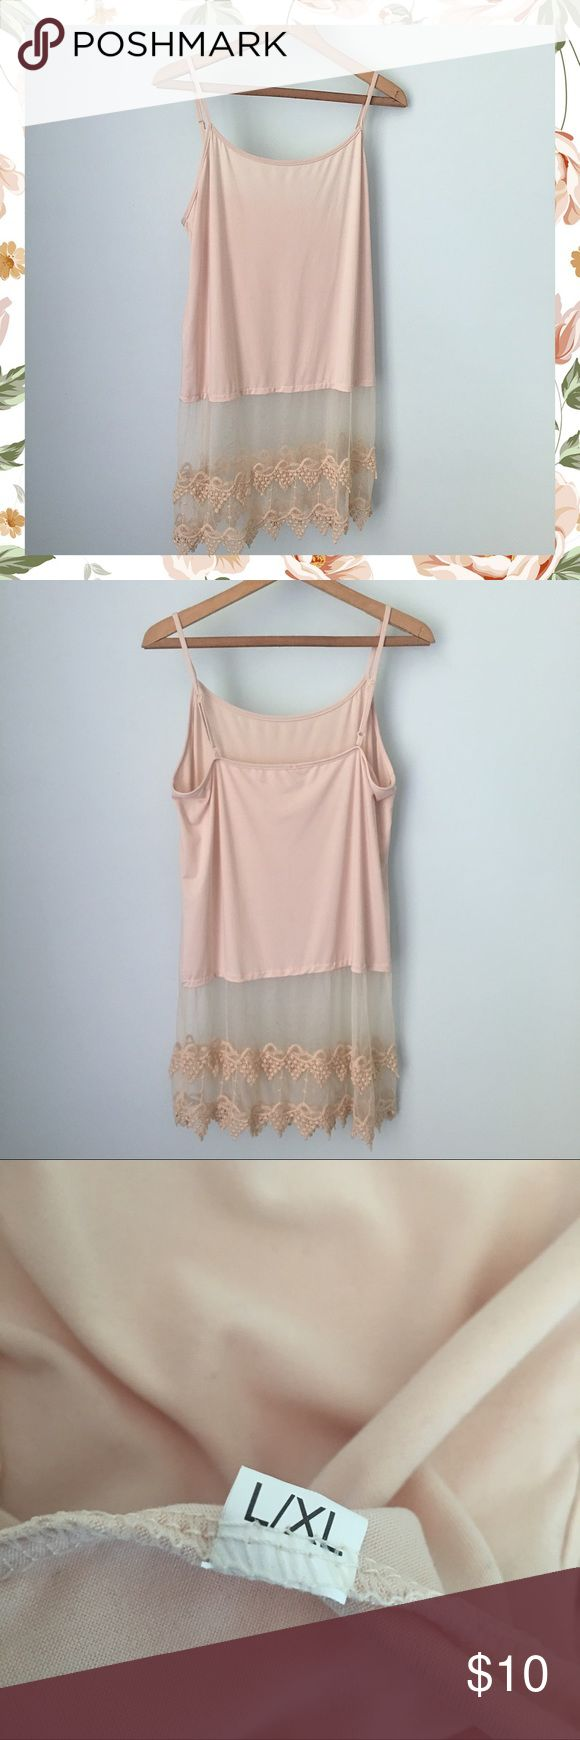 """Lace Extender Beige Cami Top - Size L/XL Lace Extender Cami Top / This is great for layering under a top to make it longer / It has adjustable straps / It is beige in color / It is a combination of cotton & polyester / Bust is 19"""" / Length is 25"""" overall / Lace part is approximately 11"""" ---- EXCELLENT condition!!! NEVER BEEN WORN! -- I bought a white one also, and have loved wearing it. Accessories"""